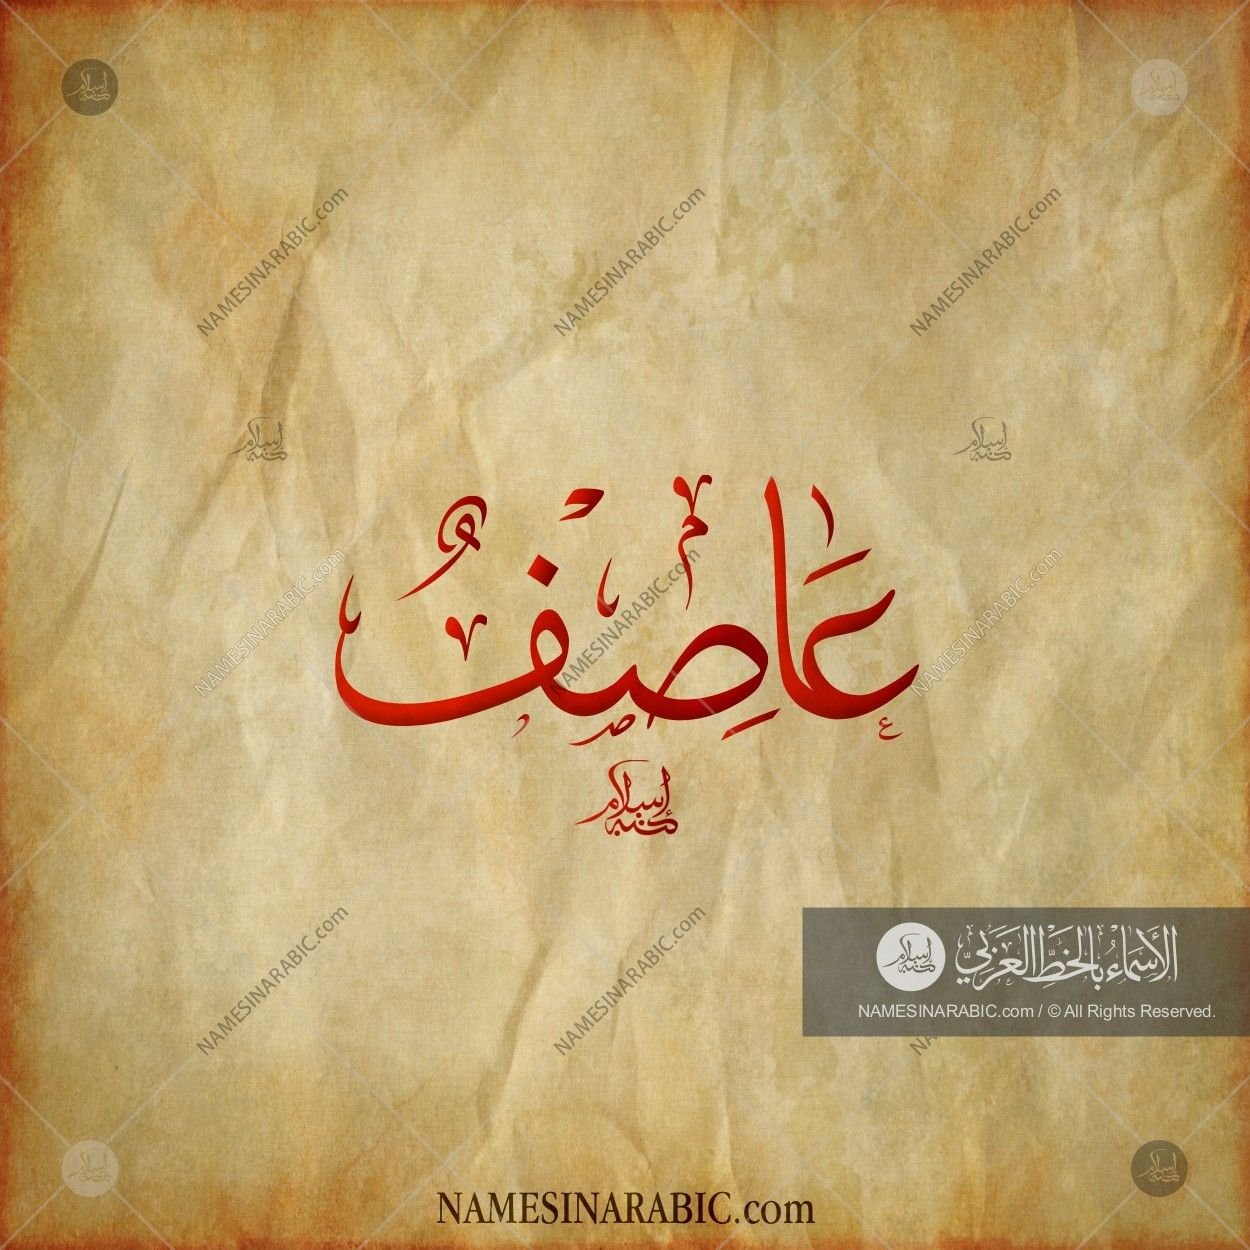 Asif - عاصف / Names in Arabic Calligraphy | Name# 8508